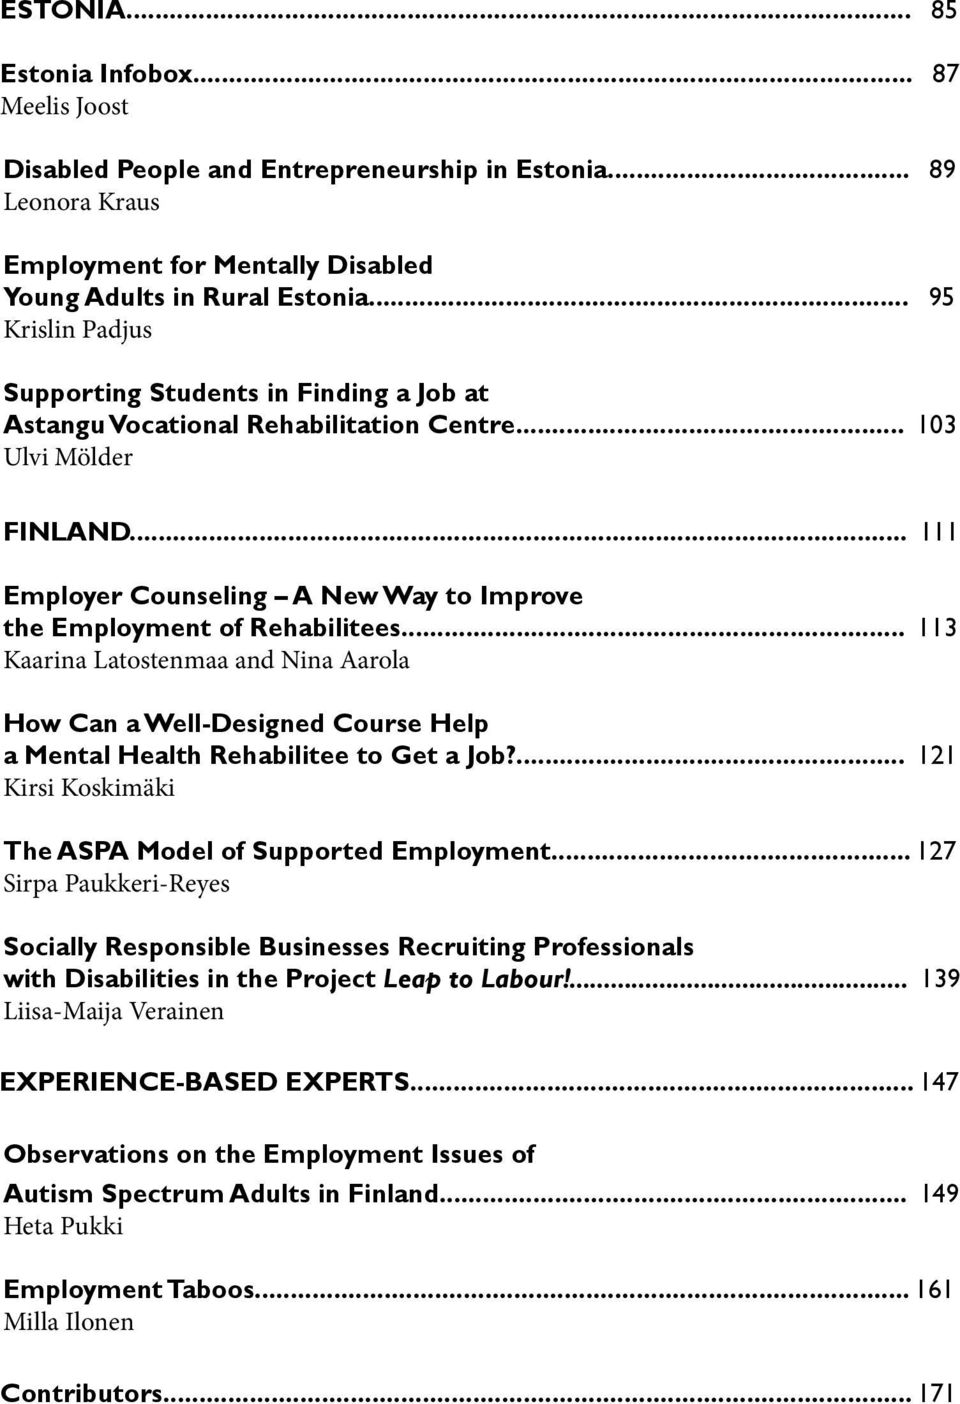 .. 111 Employer Counseling A New Way to Improve the Employment of Rehabilitees... 113 Kaarina Latostenmaa and Nina Aarola How Can a Well-Designed Course Help a Mental Health Rehabilitee to Get a Job?